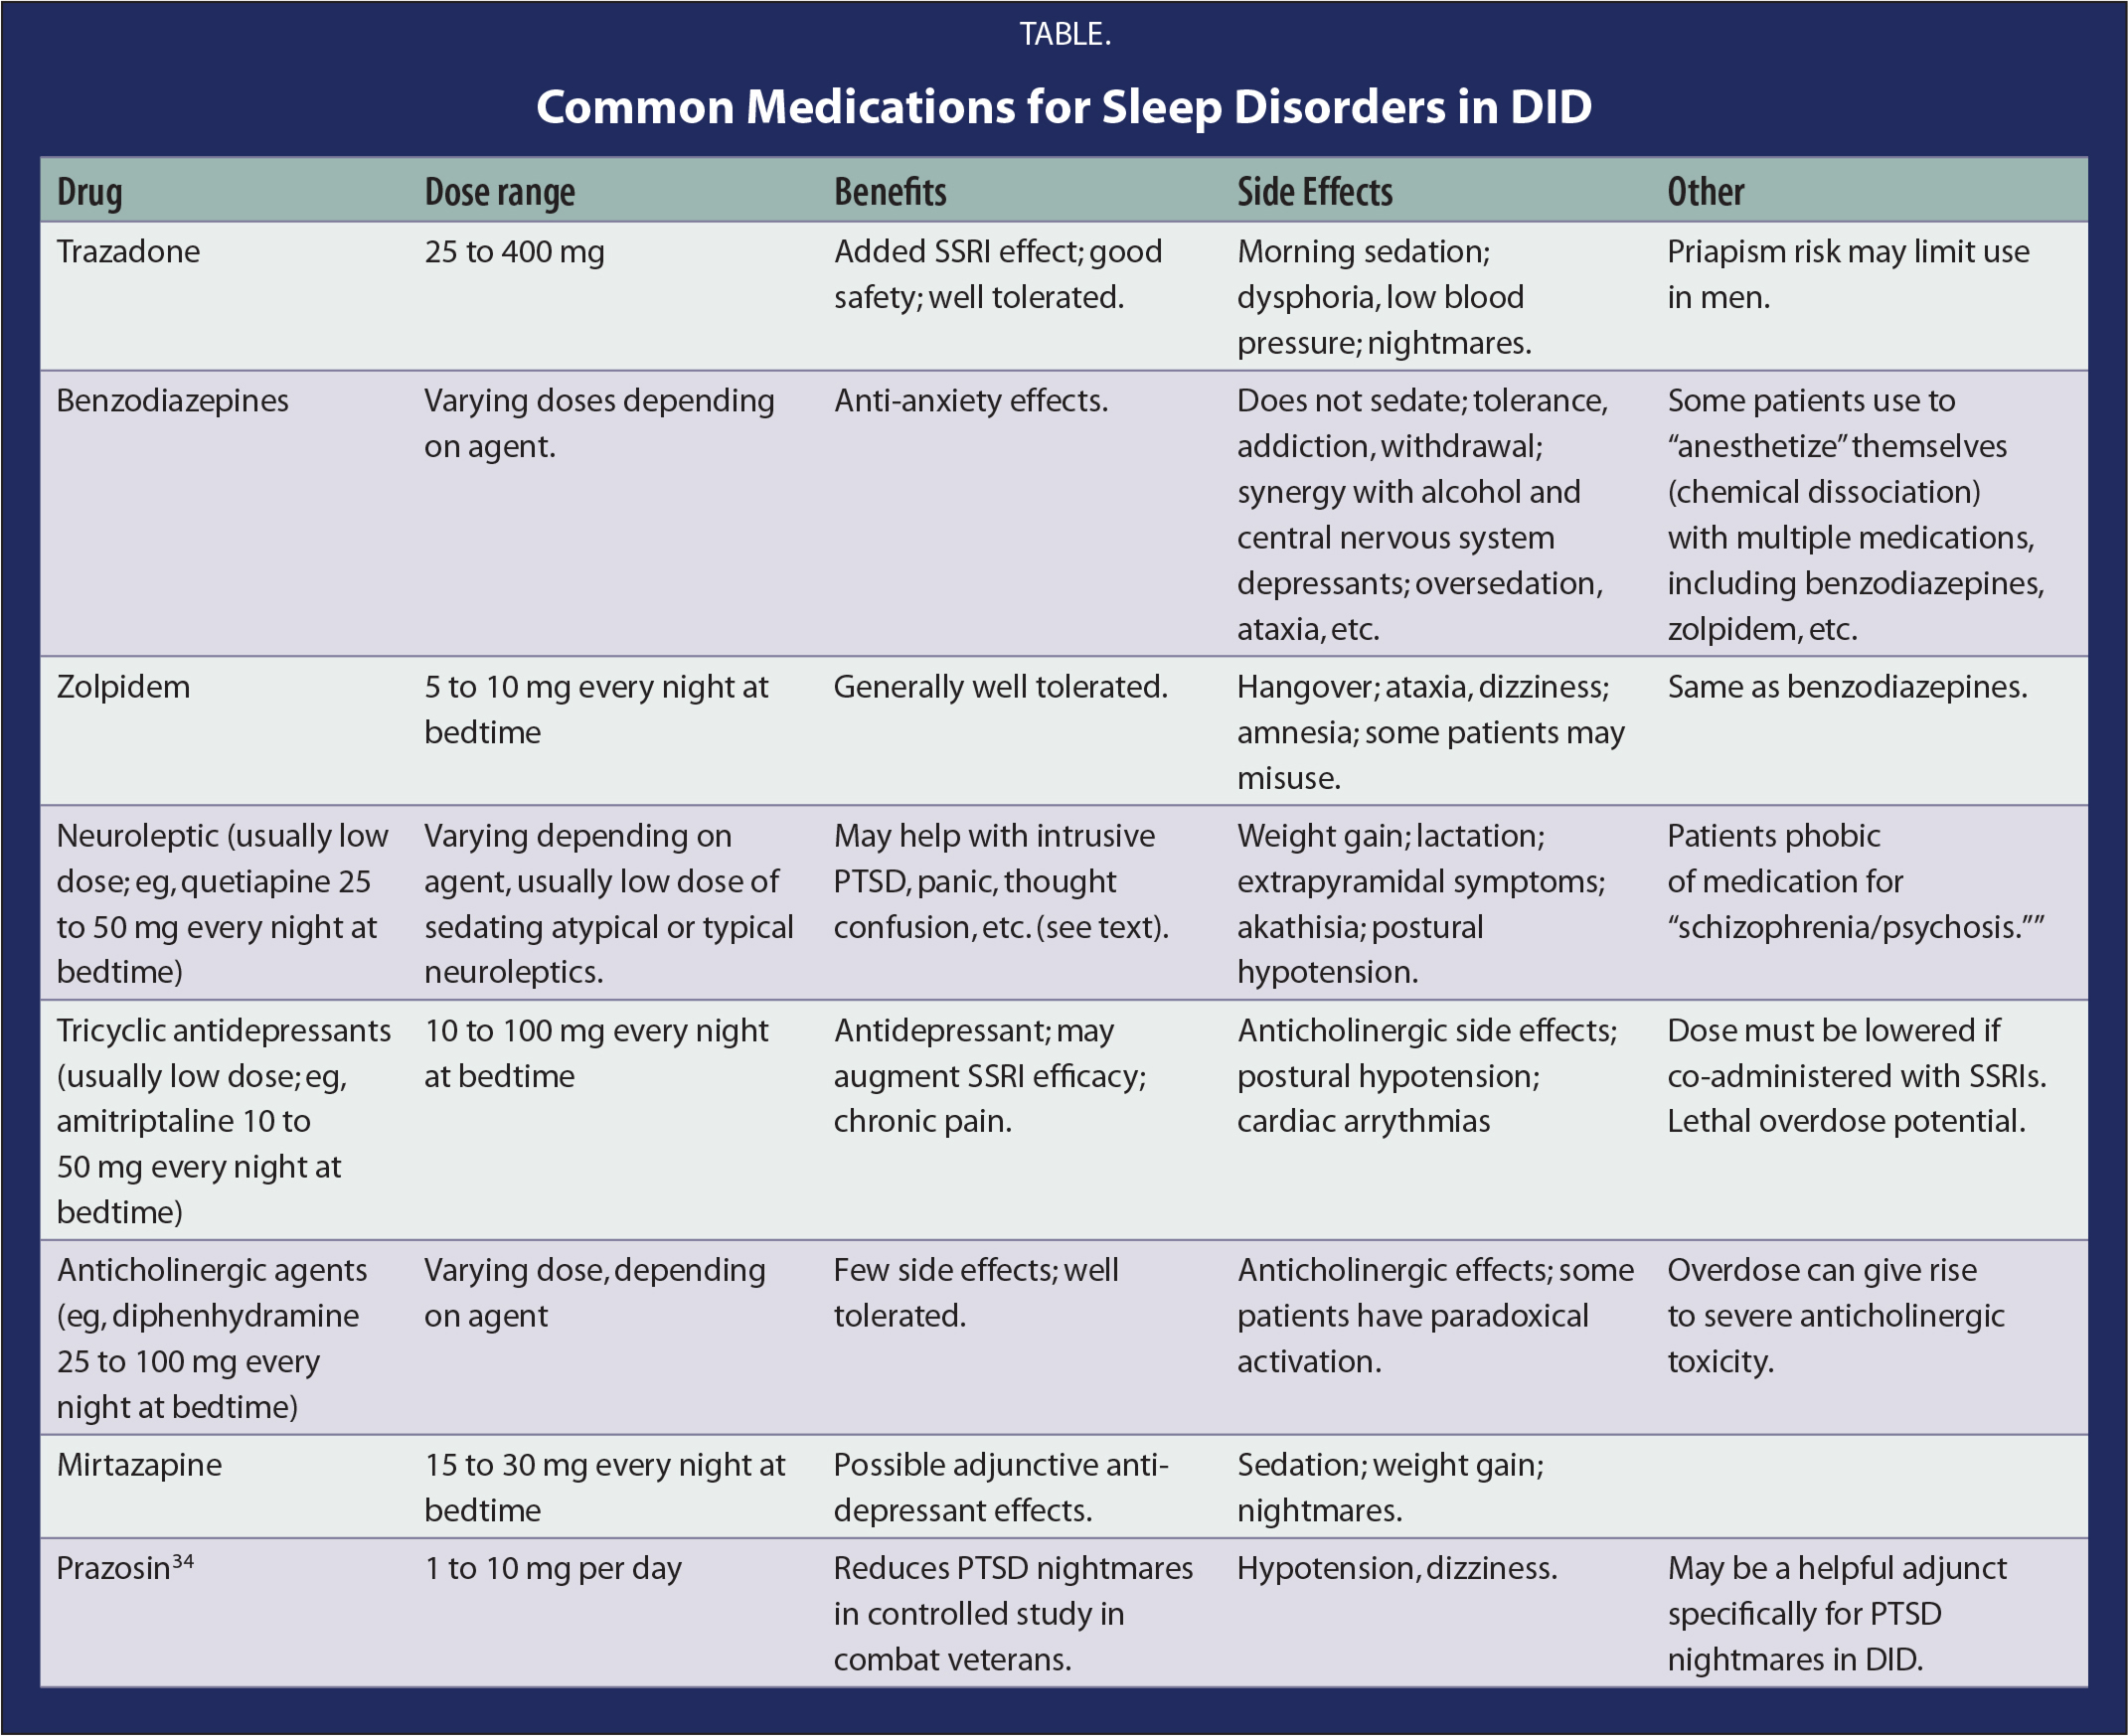 Common Medications for Sleep Disorders in DID